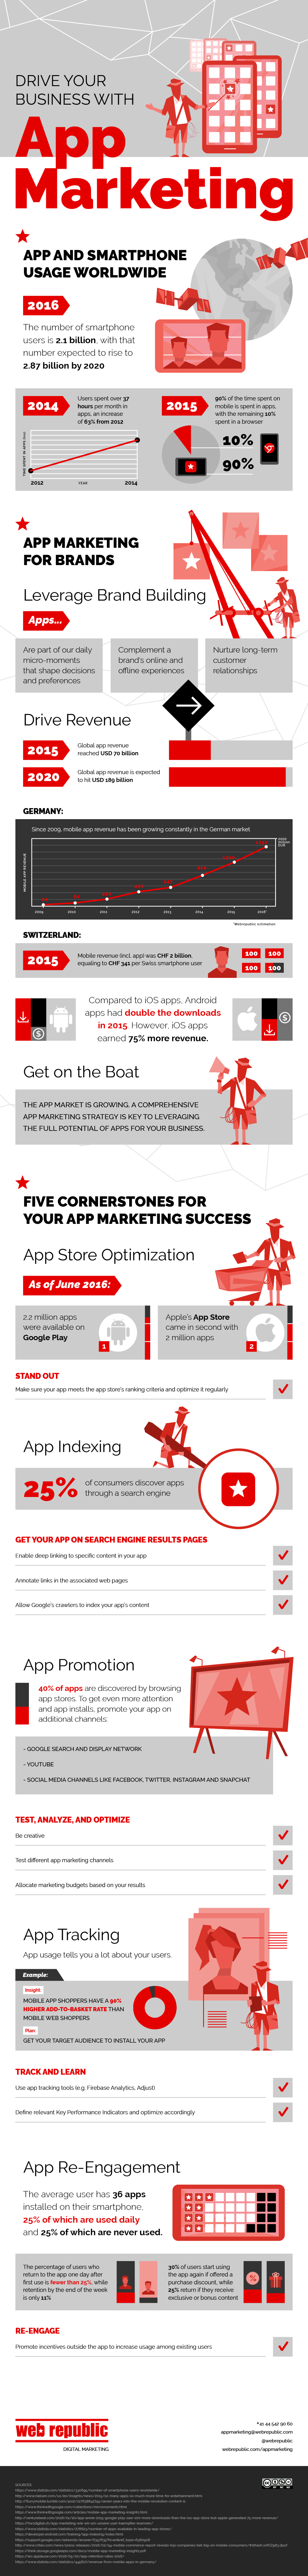 INFOGRAPHIC: APP MARKETING